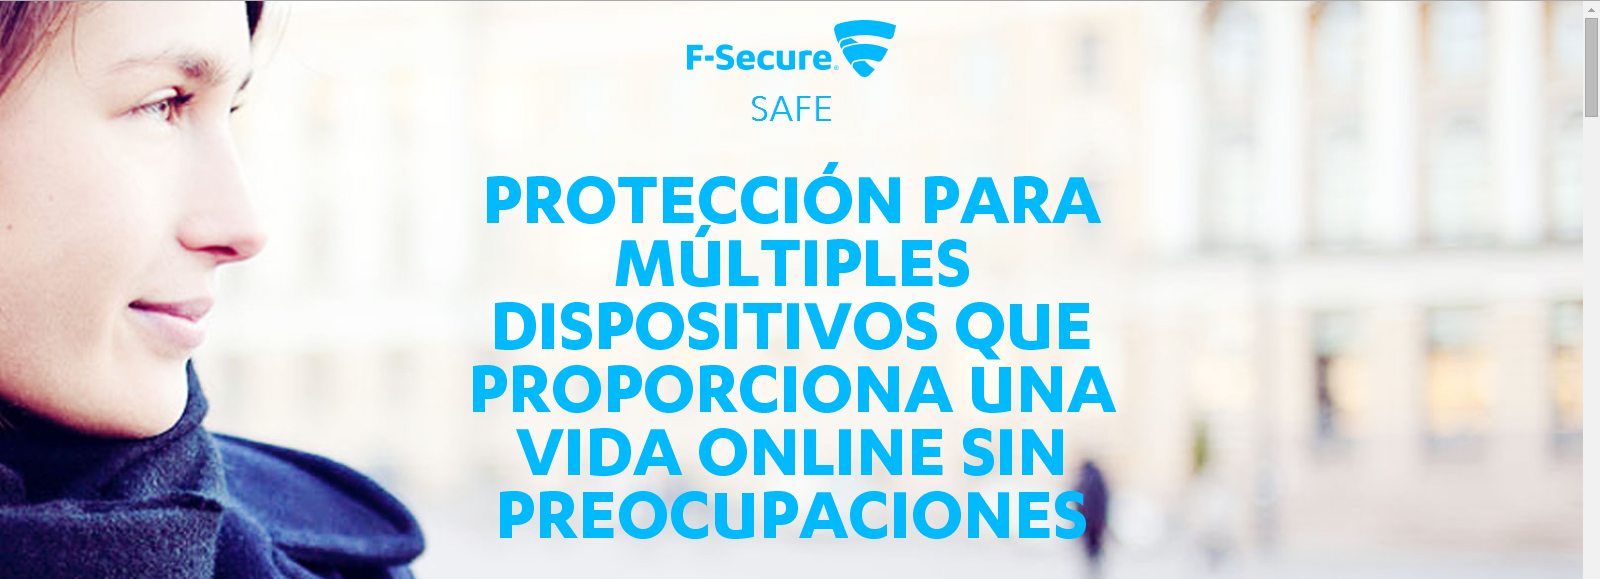 f-secure (1)